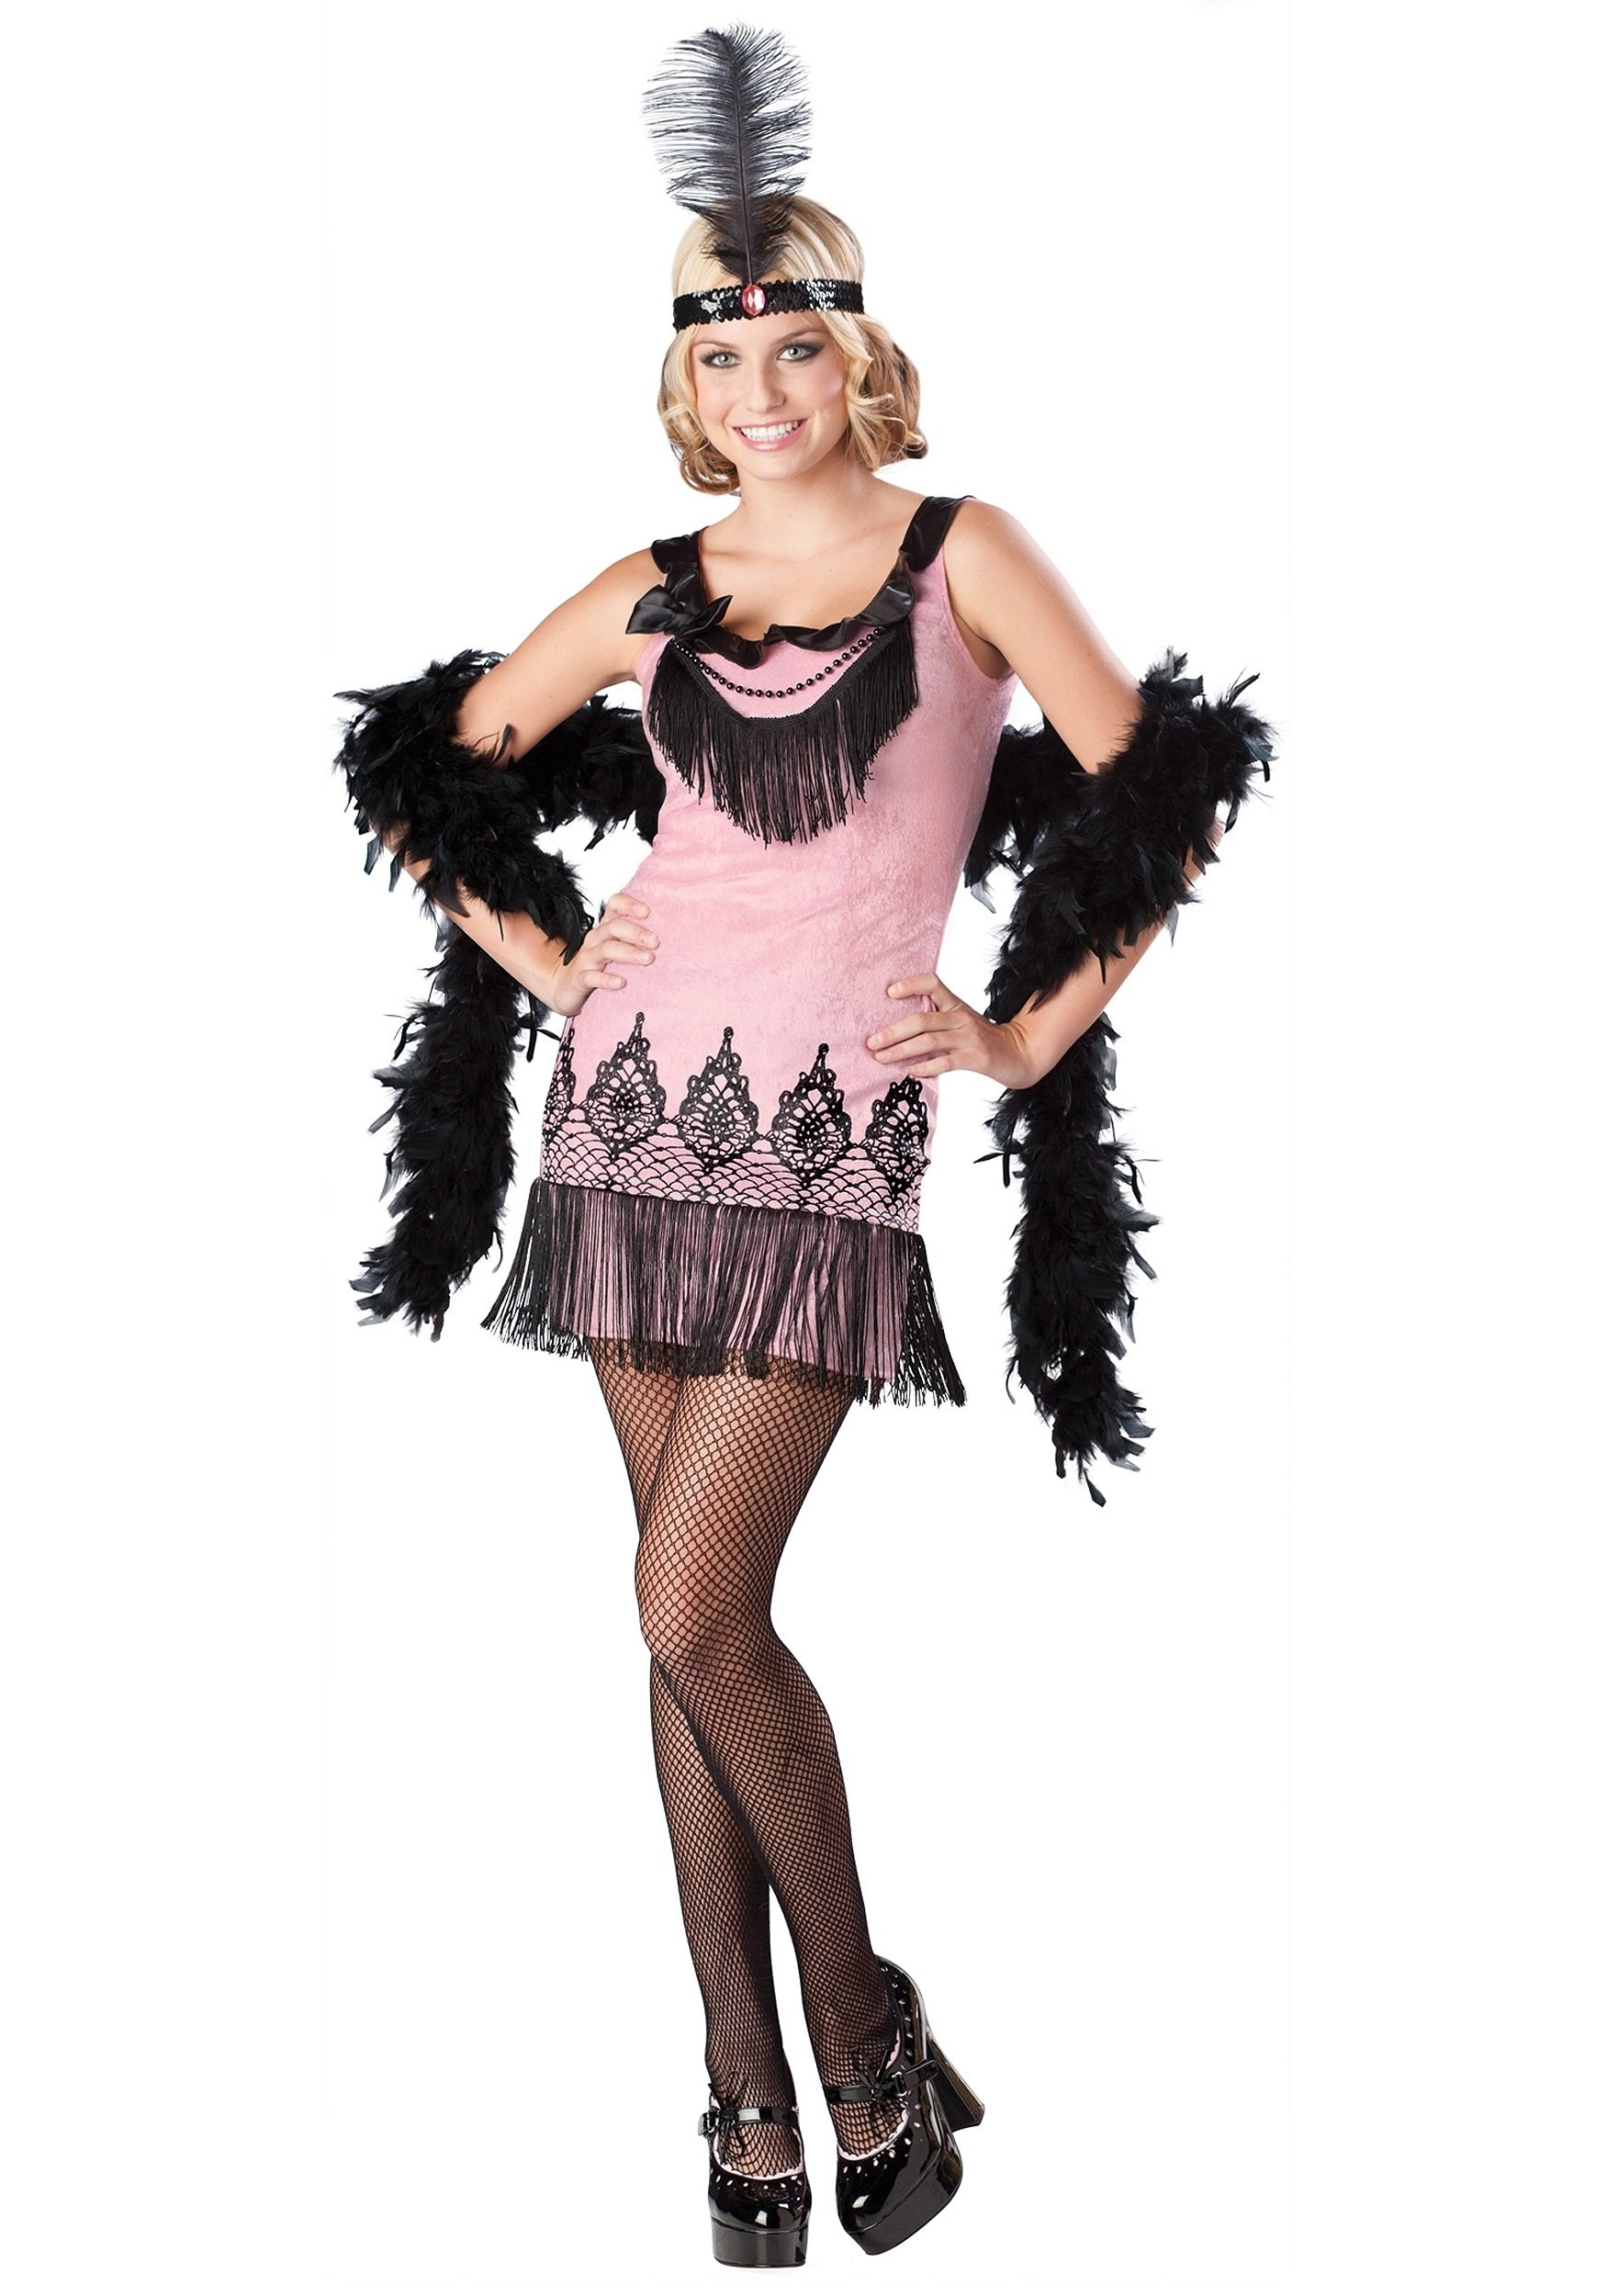 10 Fantastic Teenage Girls Halloween Costume Ideas girls teen flapper costume 2020